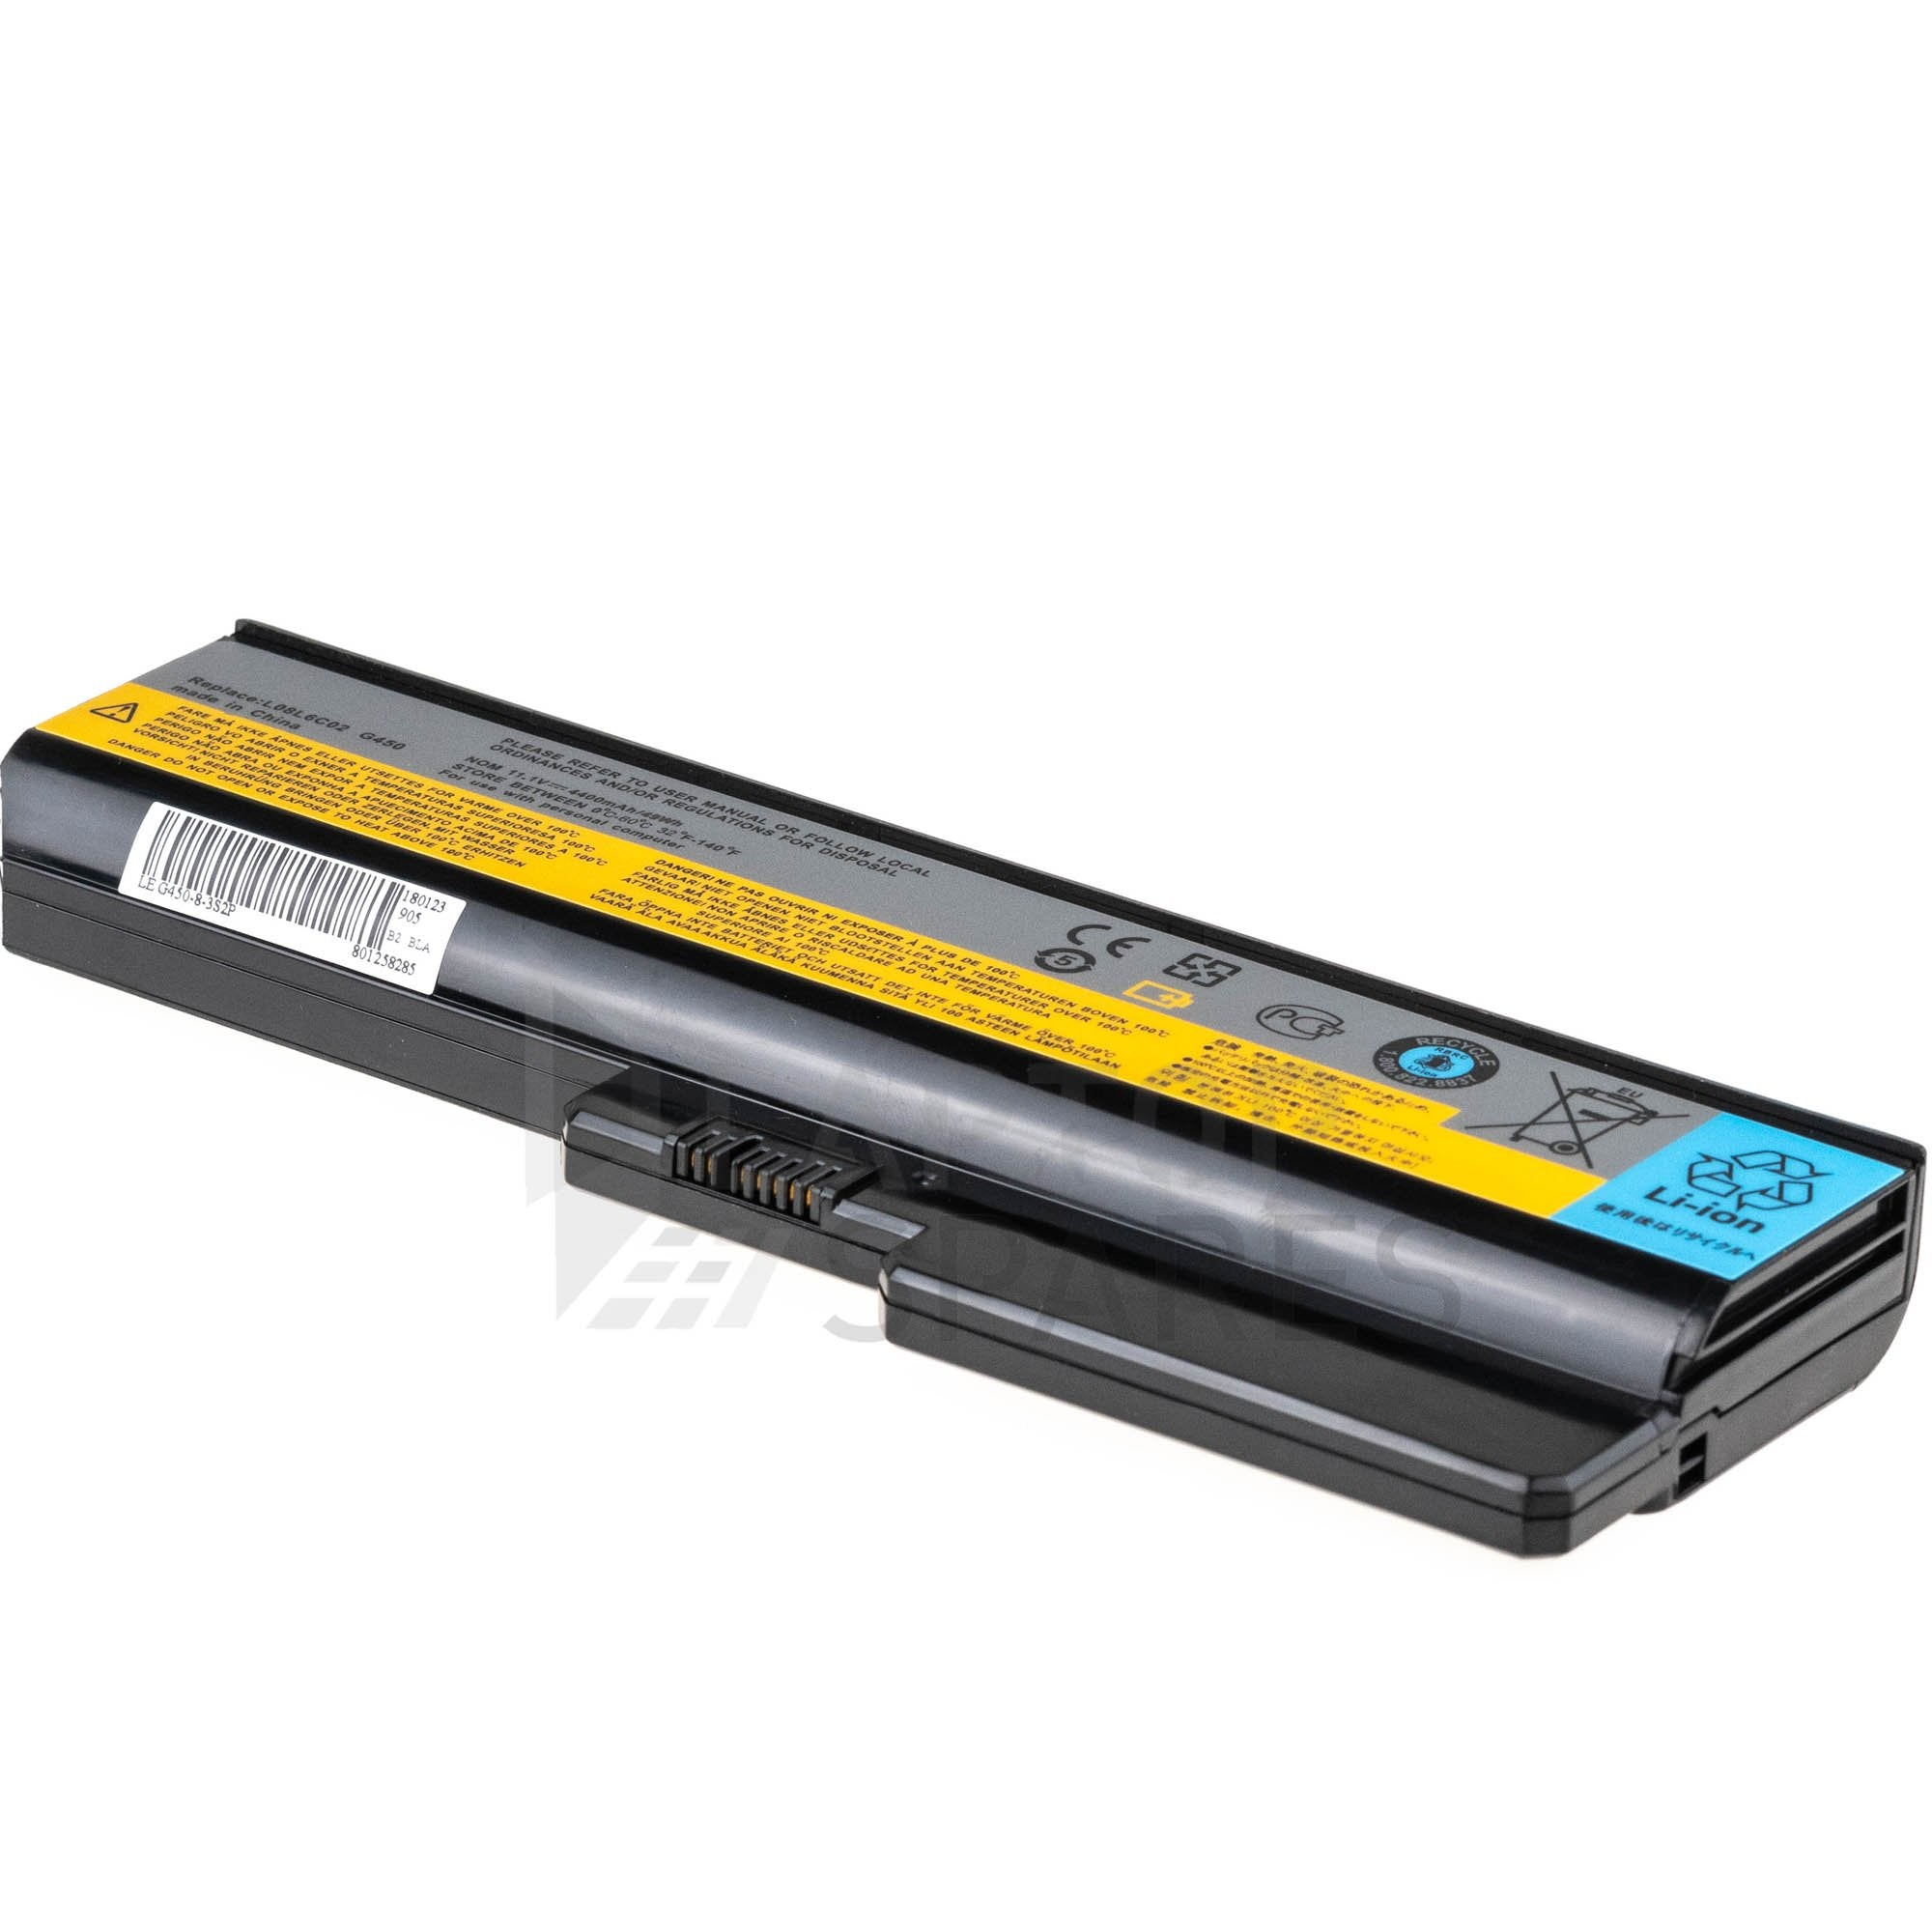 Lenovo L3000 4400mAh 6 Cell Battery